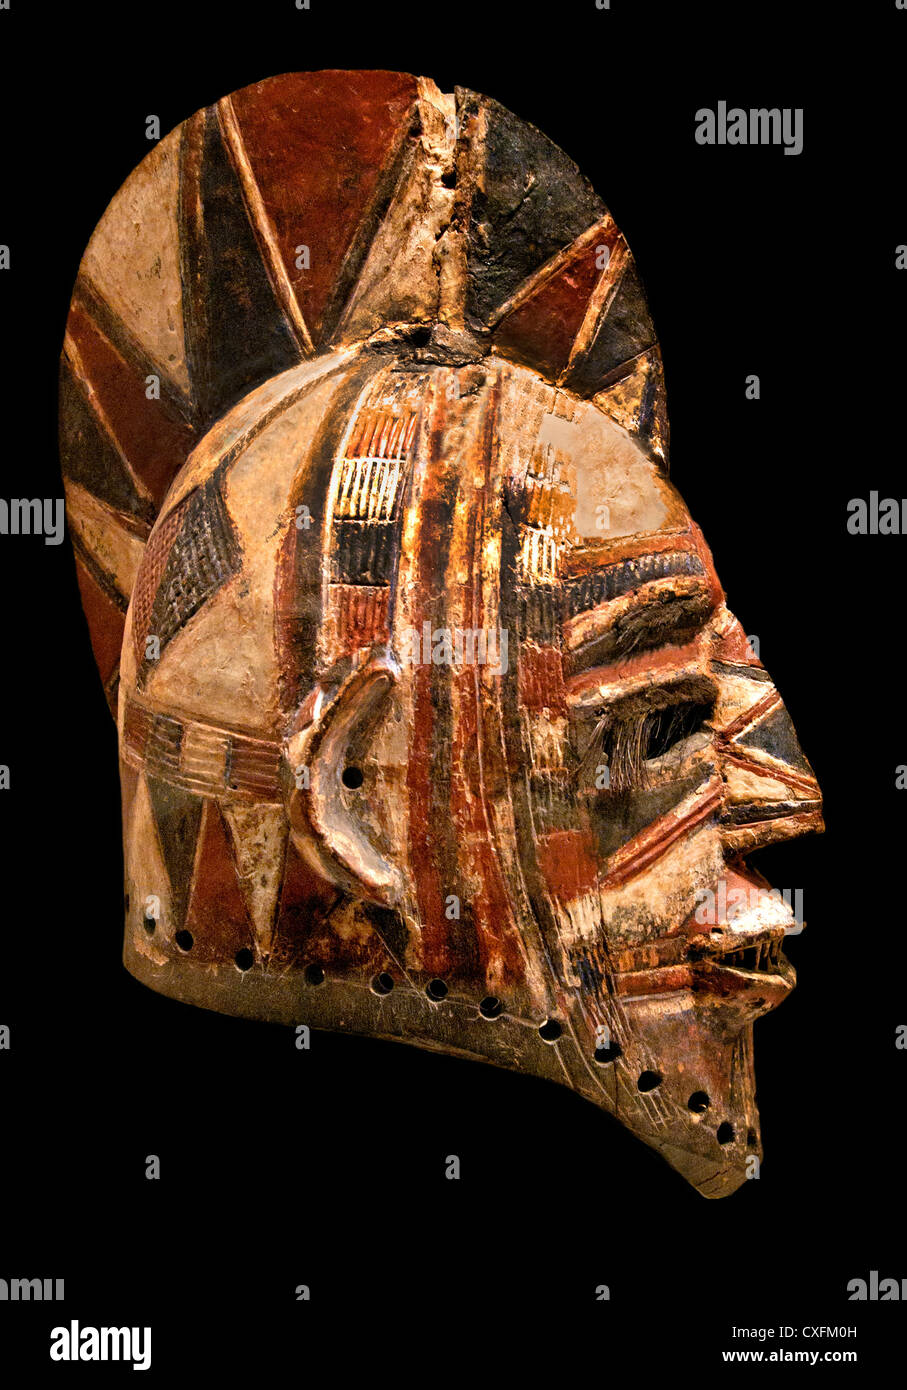 Helmet Mask Bolo 19th 20th century  Burkina Faso  Bobo Peoples  Medium Wood Sculpture Helmet Mask (Bolo) Africa - Stock Image